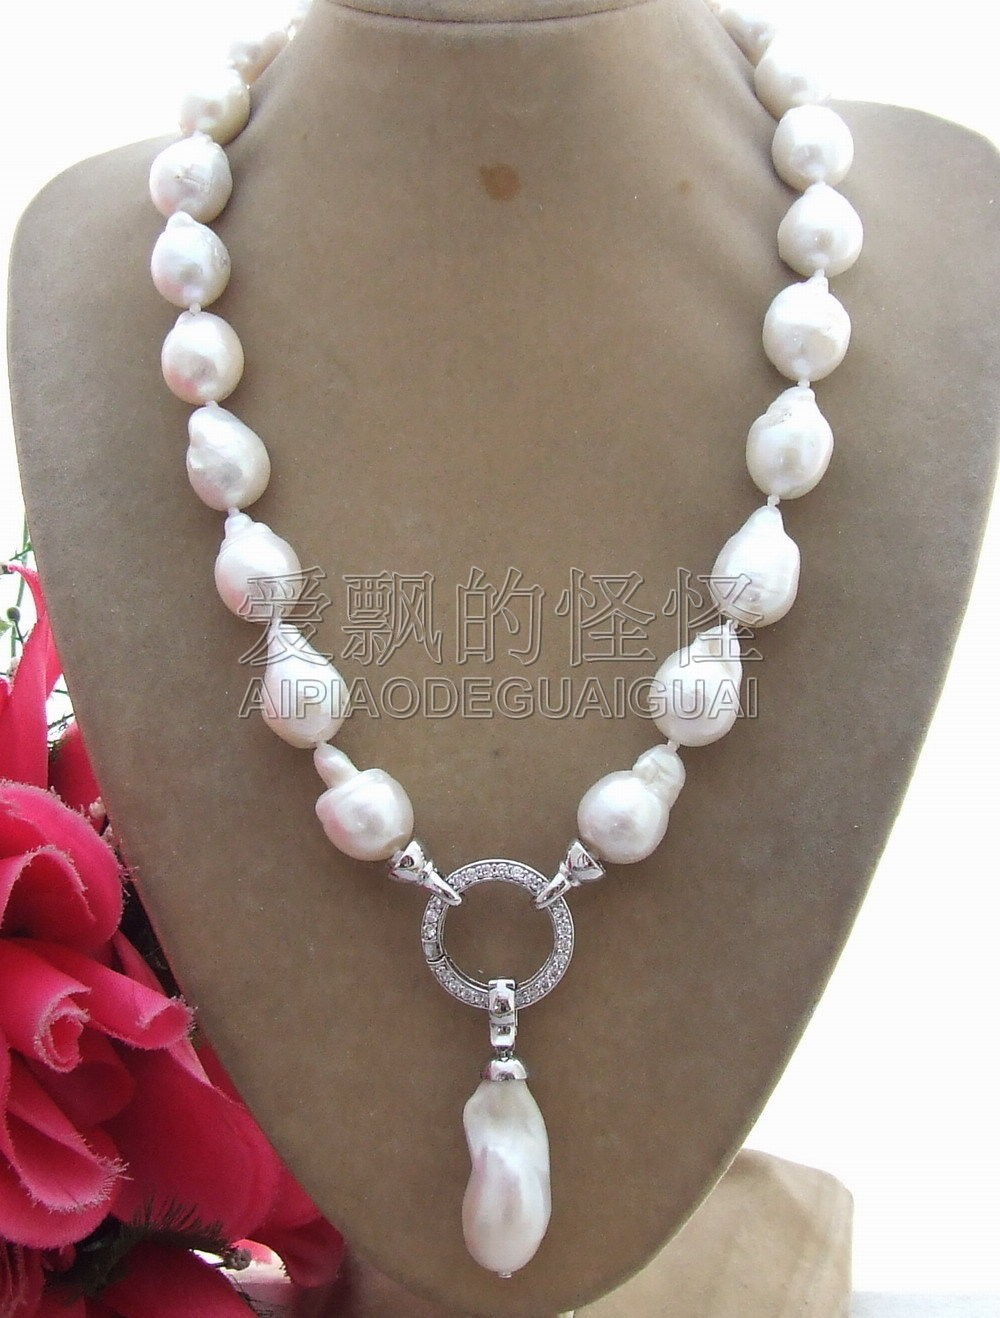 N062404 18MM Bead-Nucleated Pearl Necklace-25mm pendantN062404 18MM Bead-Nucleated Pearl Necklace-25mm pendant